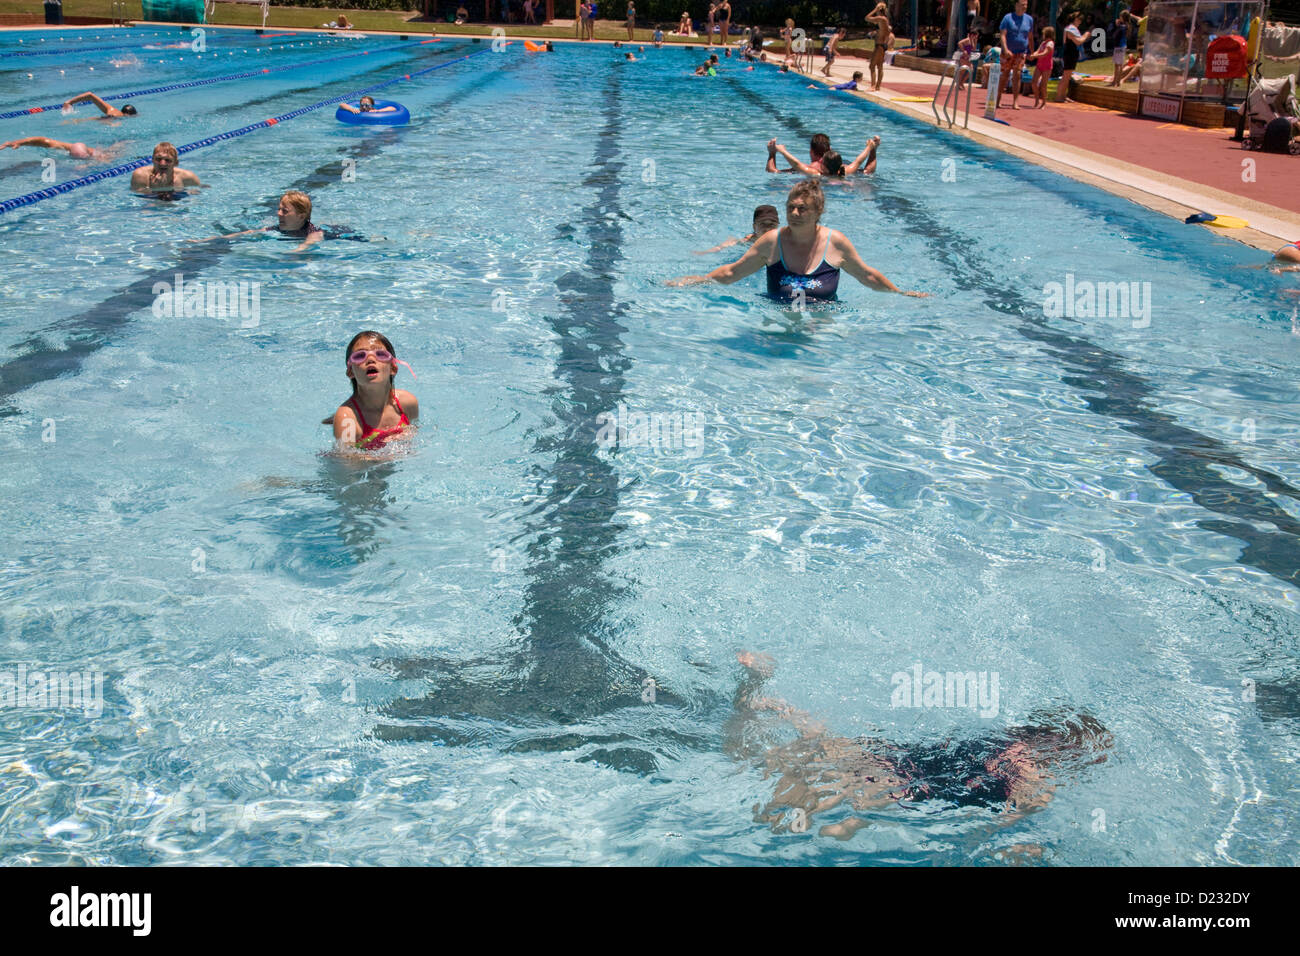 Manly open air swimming pool , enjoyed on a very hot sydney day,australia - Stock Image